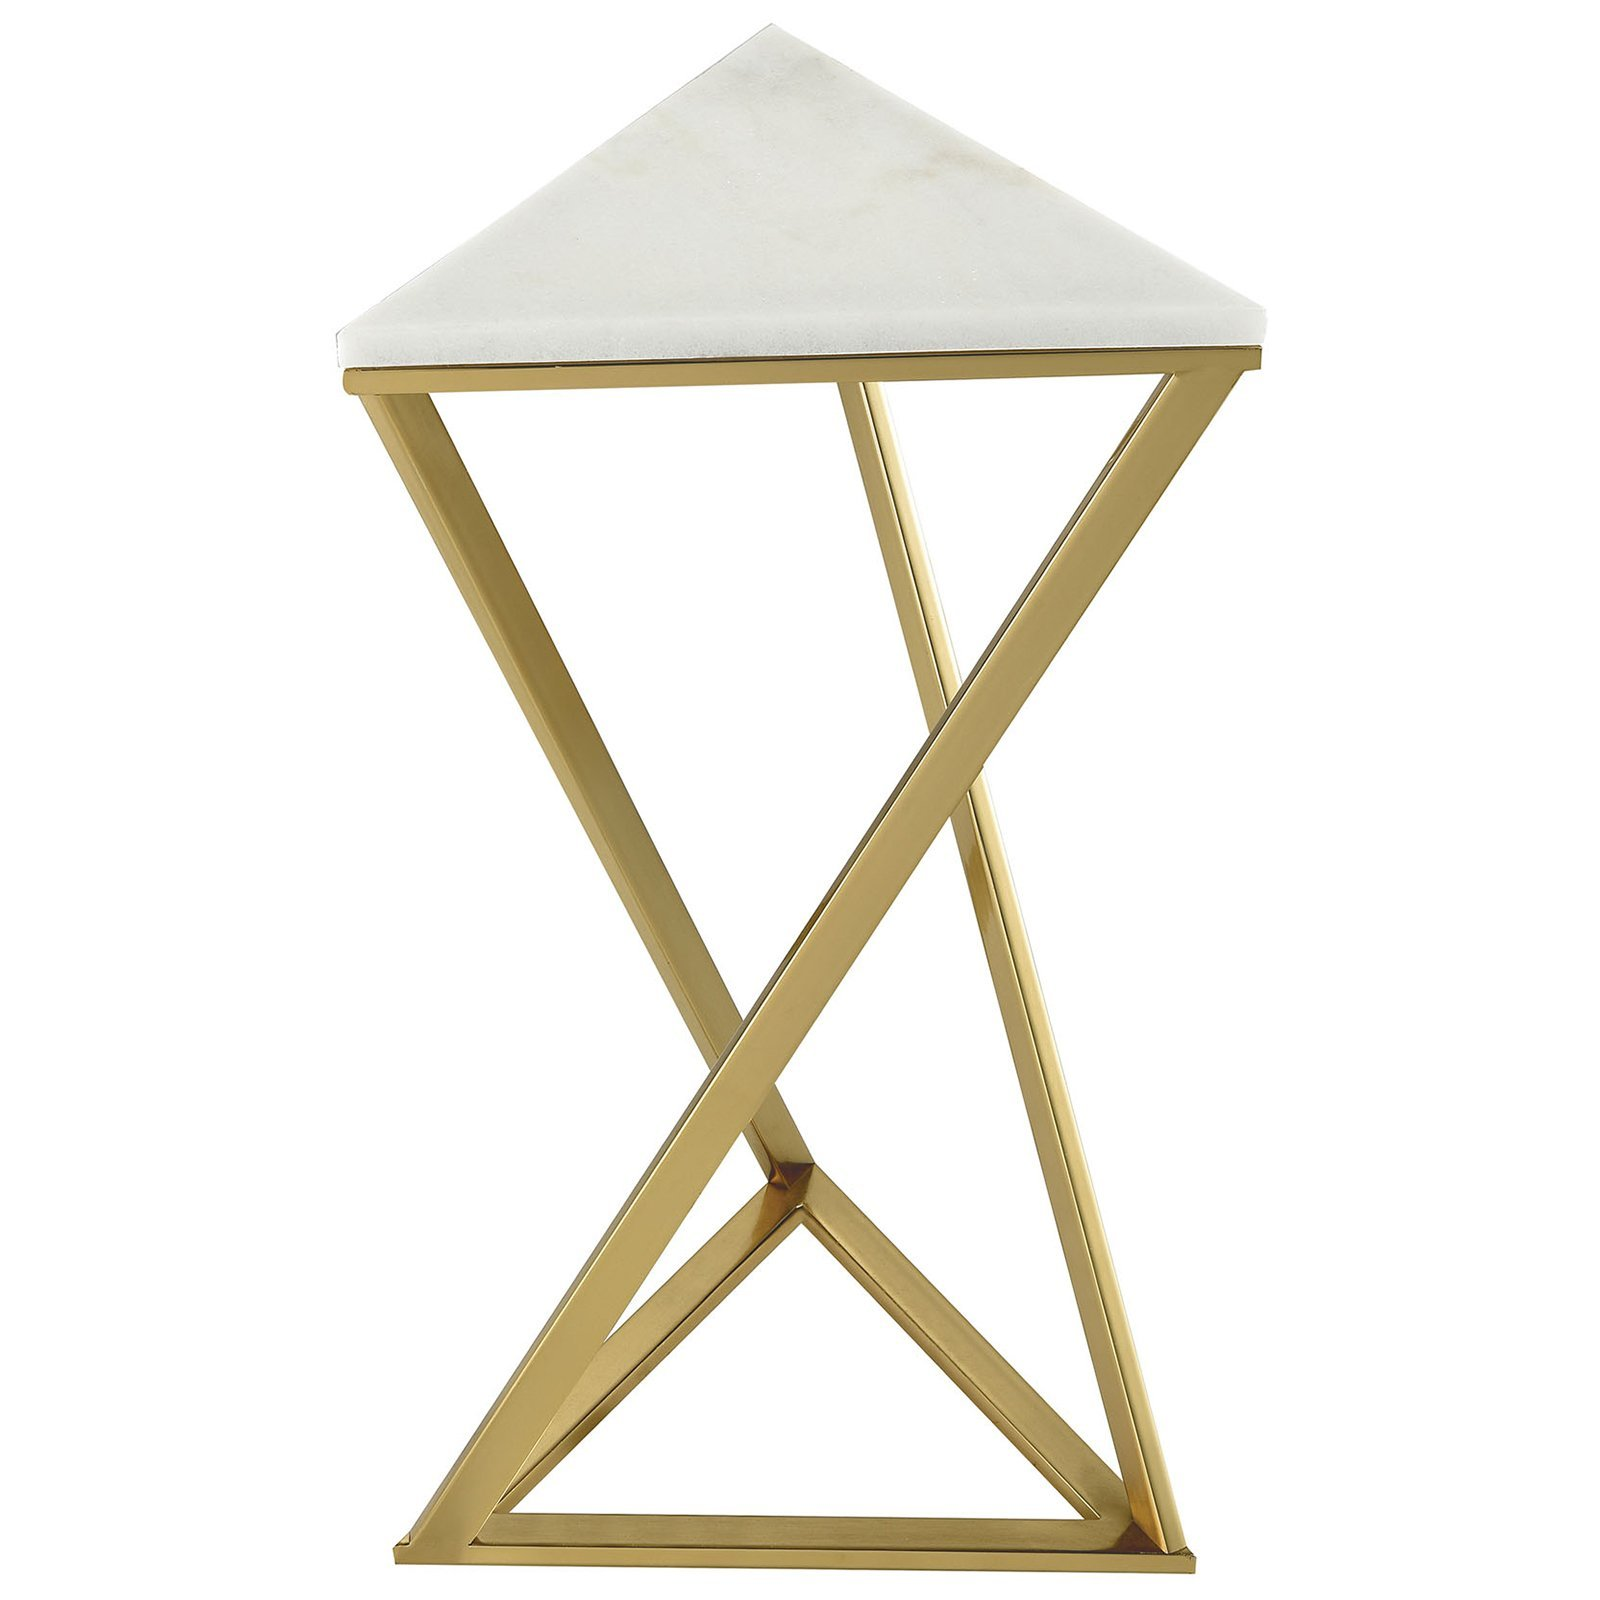 garde contemporary accent tables white fratantoni lifestyles gold marble table plated metal with genuine top italian furniture bunnings umbrella green retro chair unfinished